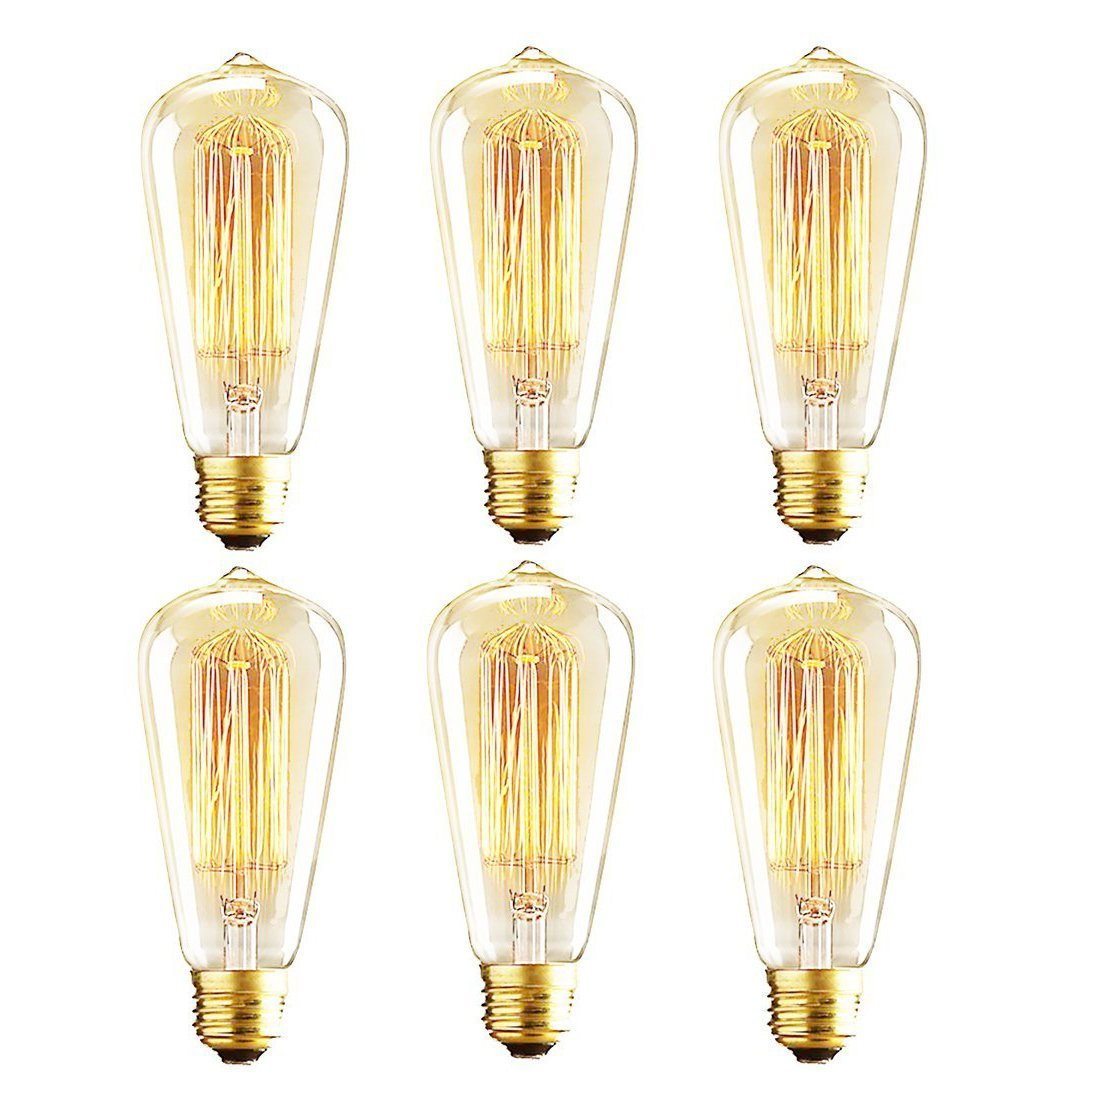 Vintage Edison Bulbs, 40W ST64 Dimmable Light Bulbs, Squirrel Cage Filament with 2700K Soft Warm White Light, 230 Lumens, Retro Light Bulbs with E26 Brass Base, Pack of 6